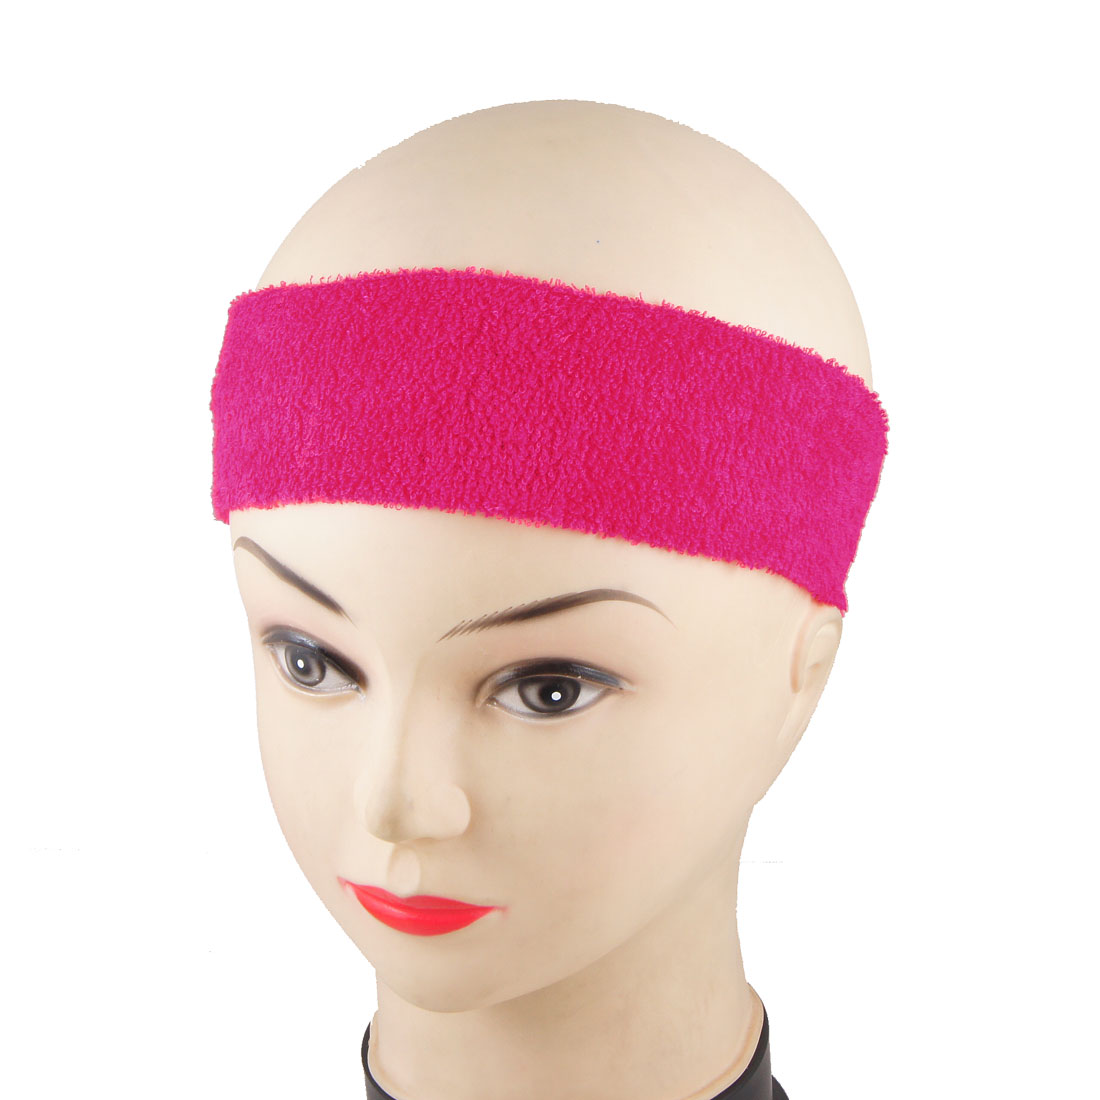 Ladies Fuchsia Sports Sweatband Elastic Head Band Headband 2 Pcs